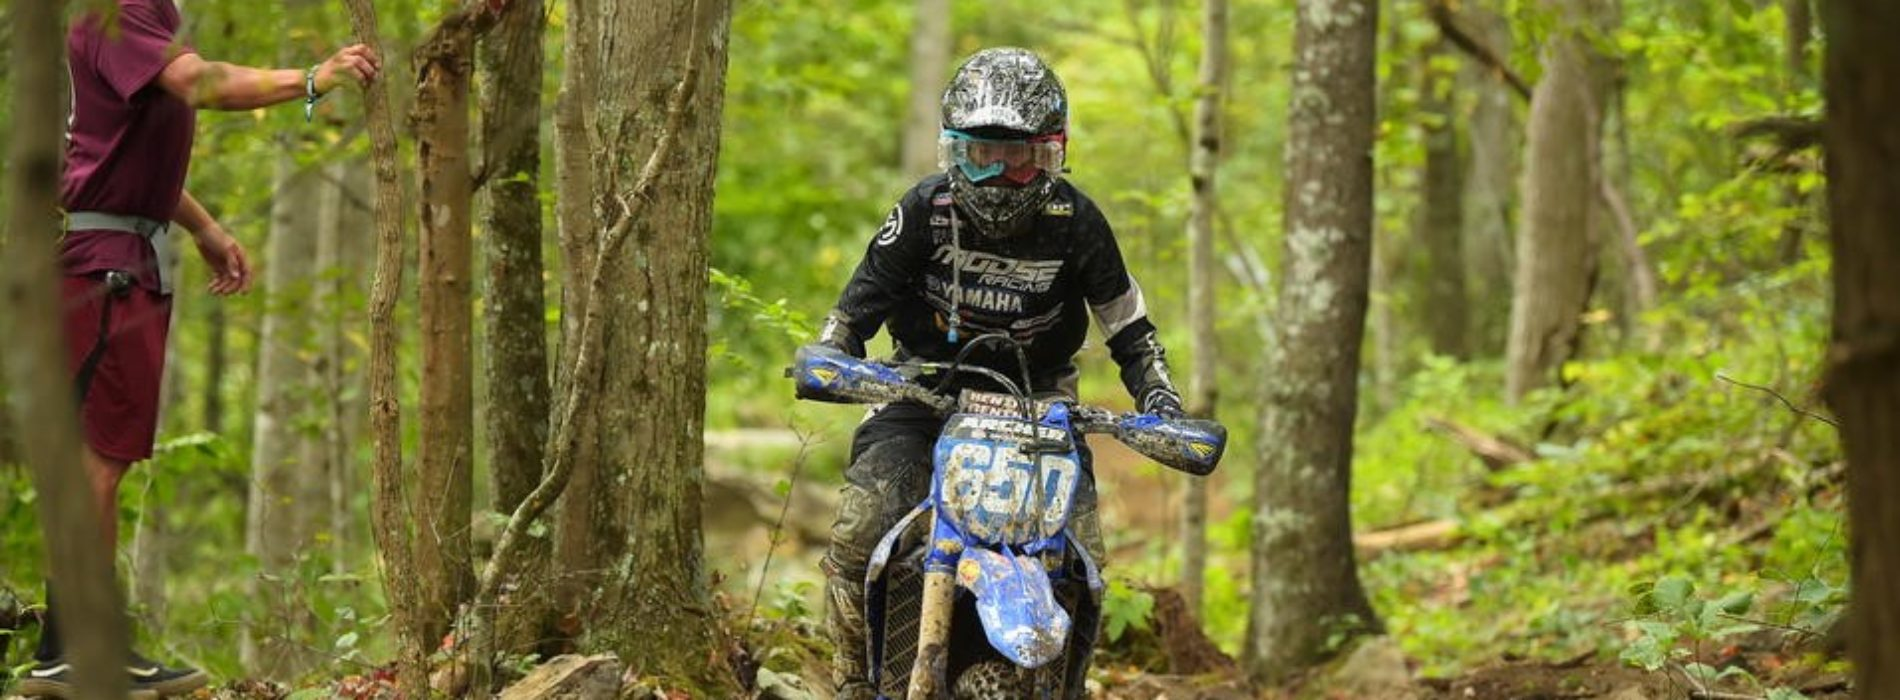 Rachael Archer races GNCC WXC Round 10 Burr Oak this weekend-